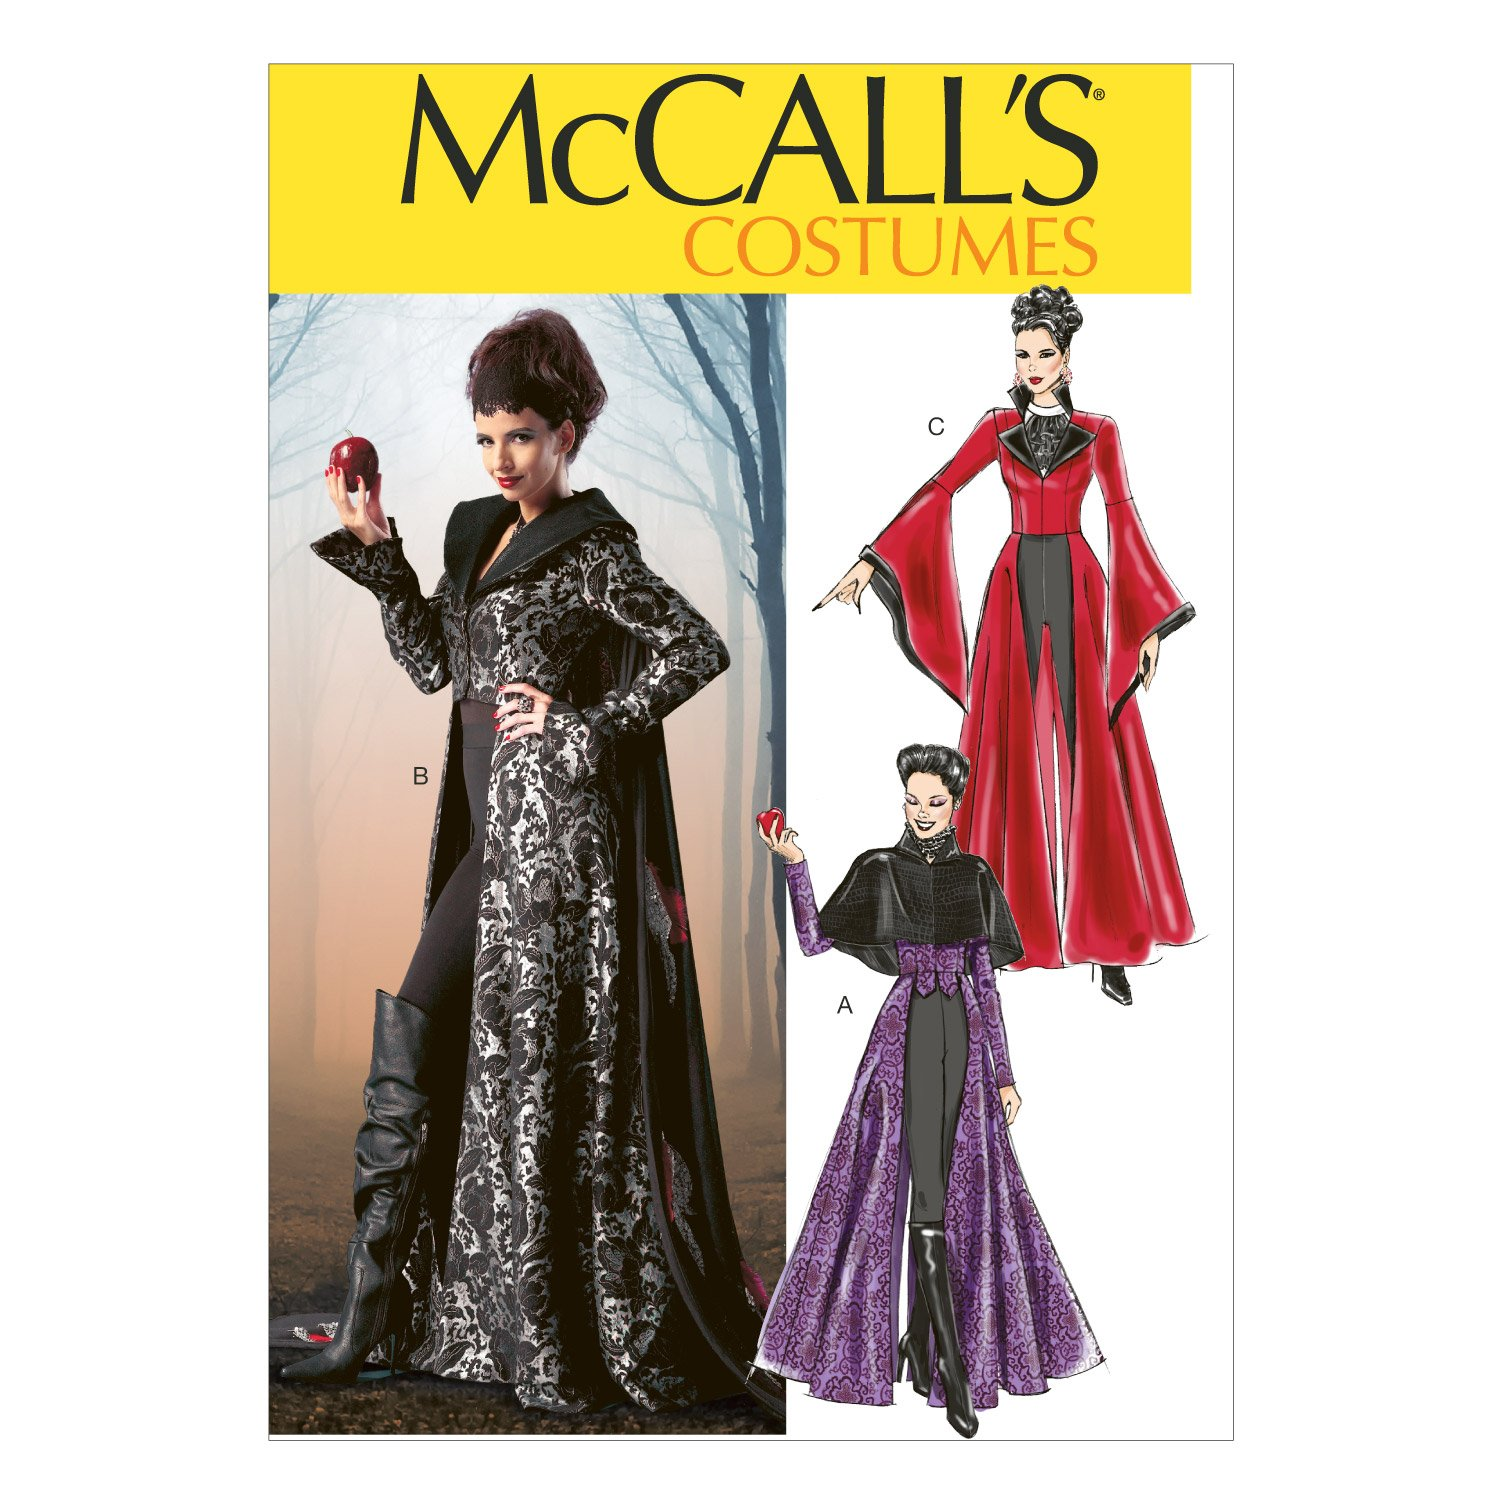 McCall Pattern Company M6818 Misses' Costumes Sewing Template, Size D5 (12-14-16-18-20) M6818D50